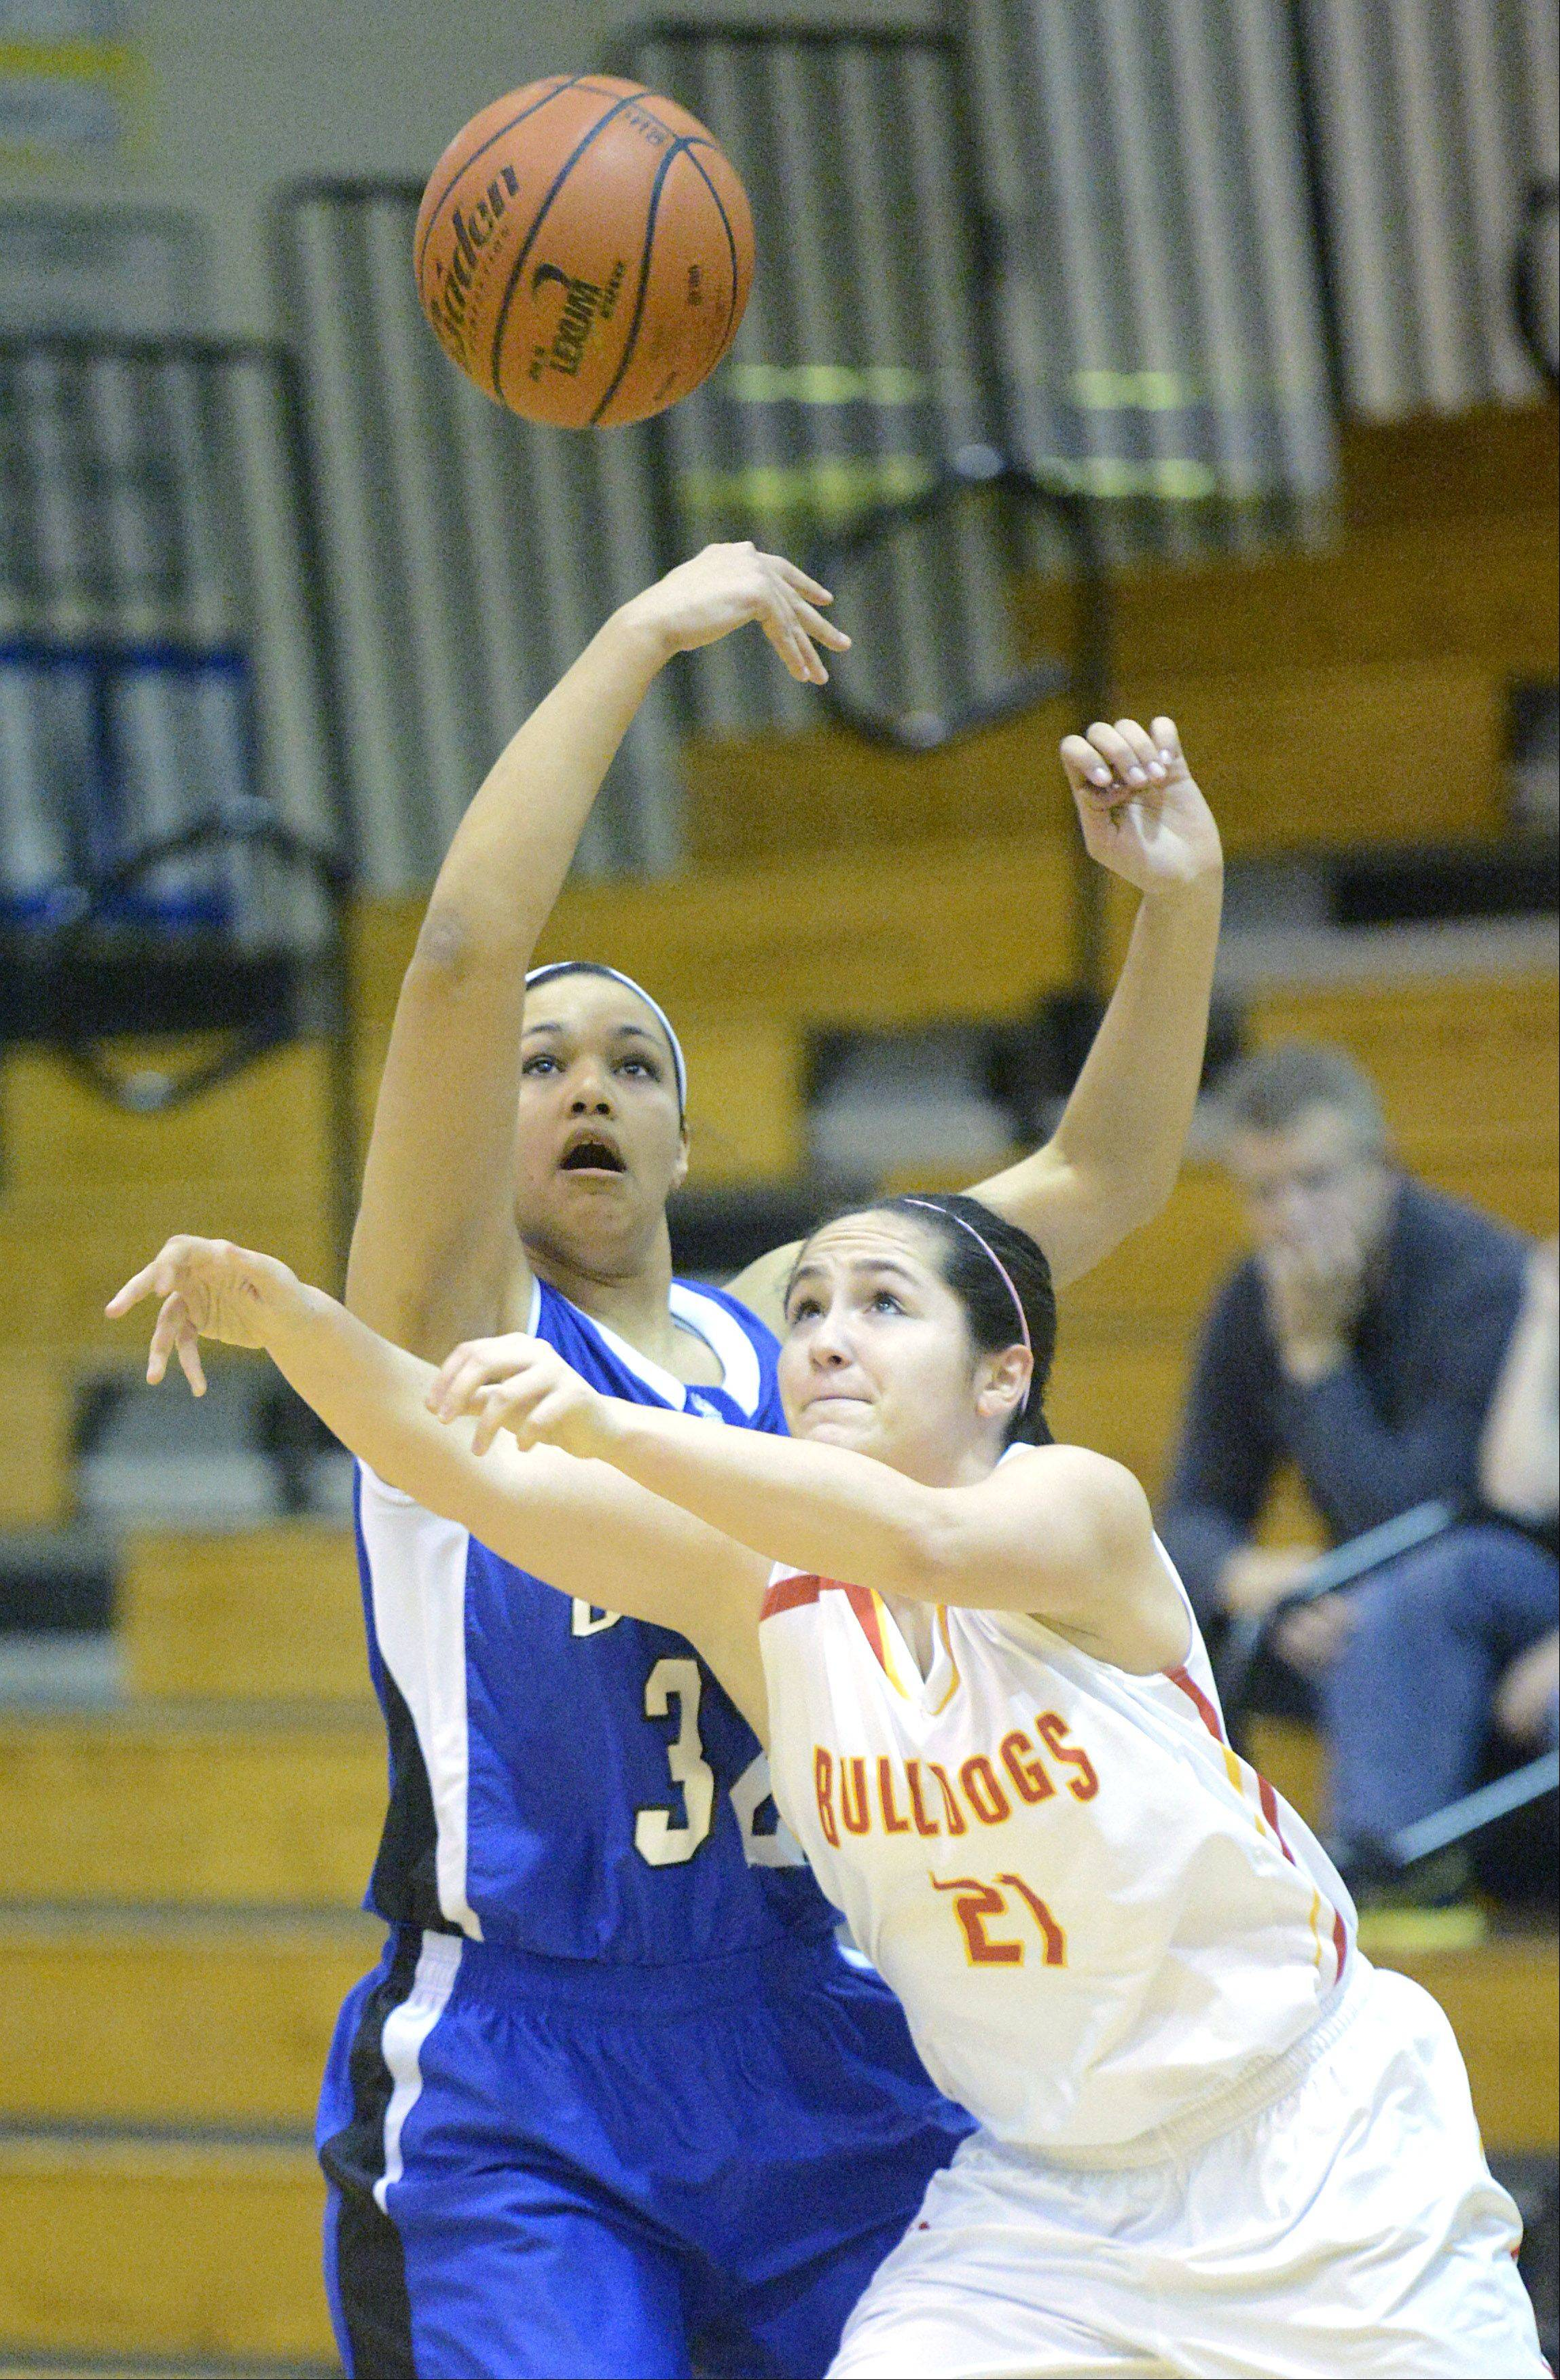 Geneva's Sidney Santos knocks the ball upward and out of the grasp of Batavia's Sami Villarreal in the first quarter on Friday, January 11.